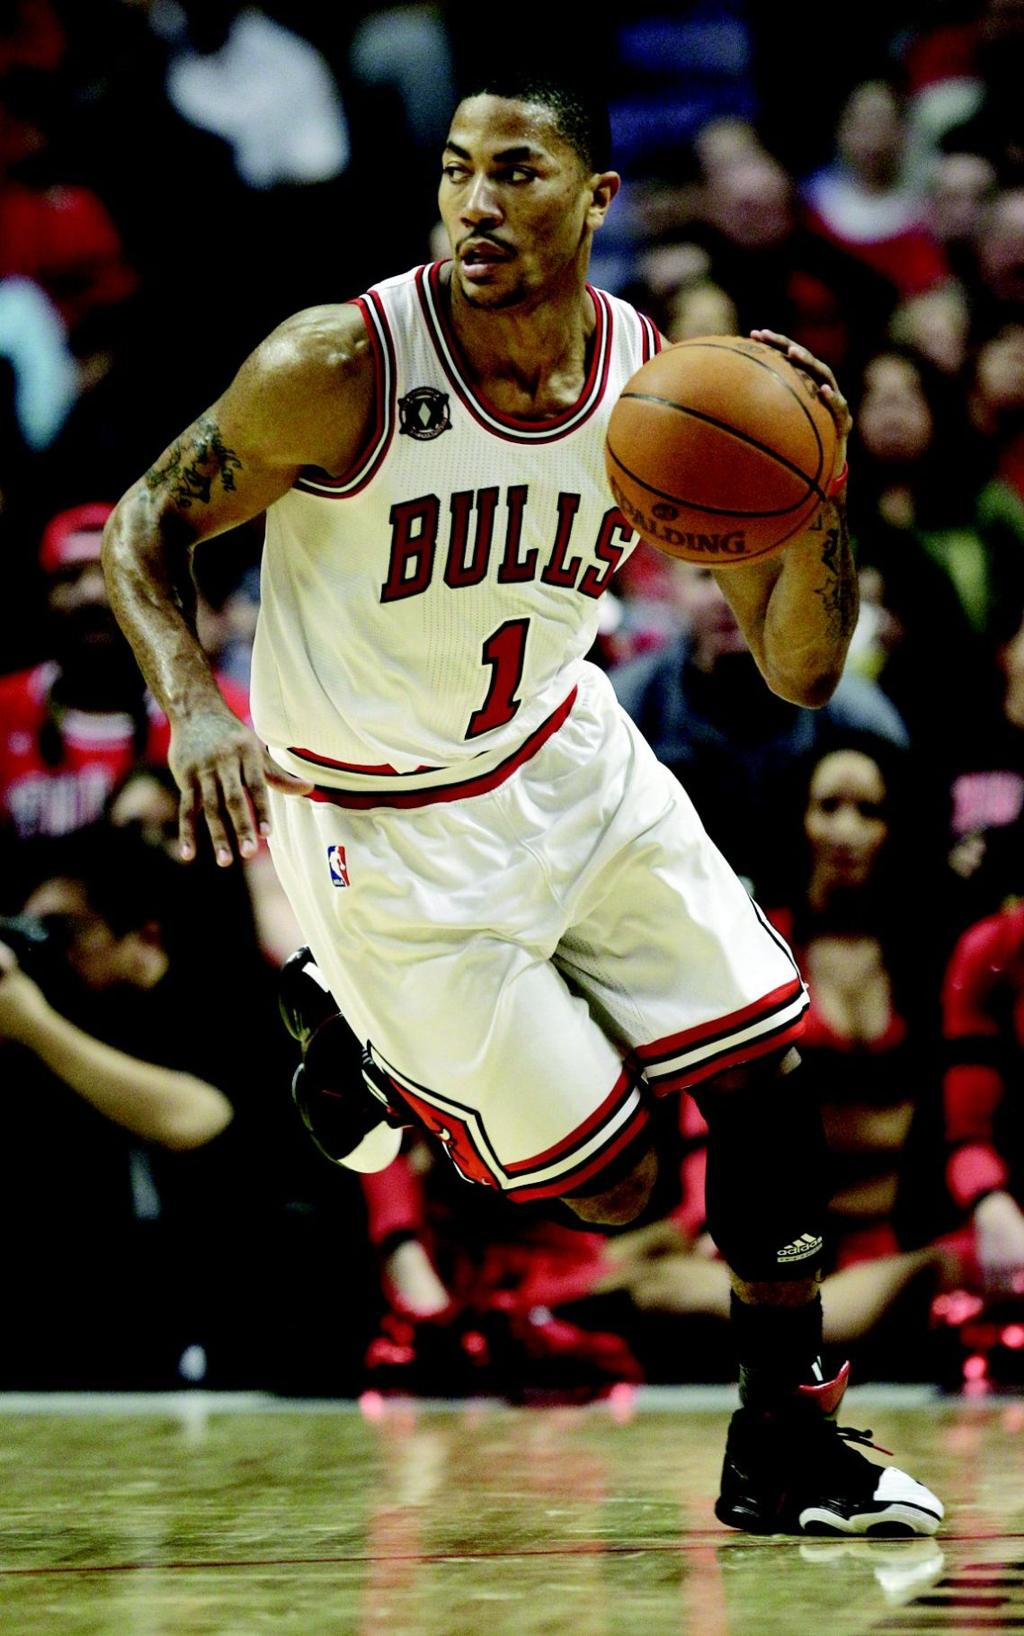 ed52e249dea4 Chicago Bulls point guard Derrick Rose brings the ball up against the  Indiana Pacers during the third quarter in Game 5 of a first-round NBA  playoffs ...